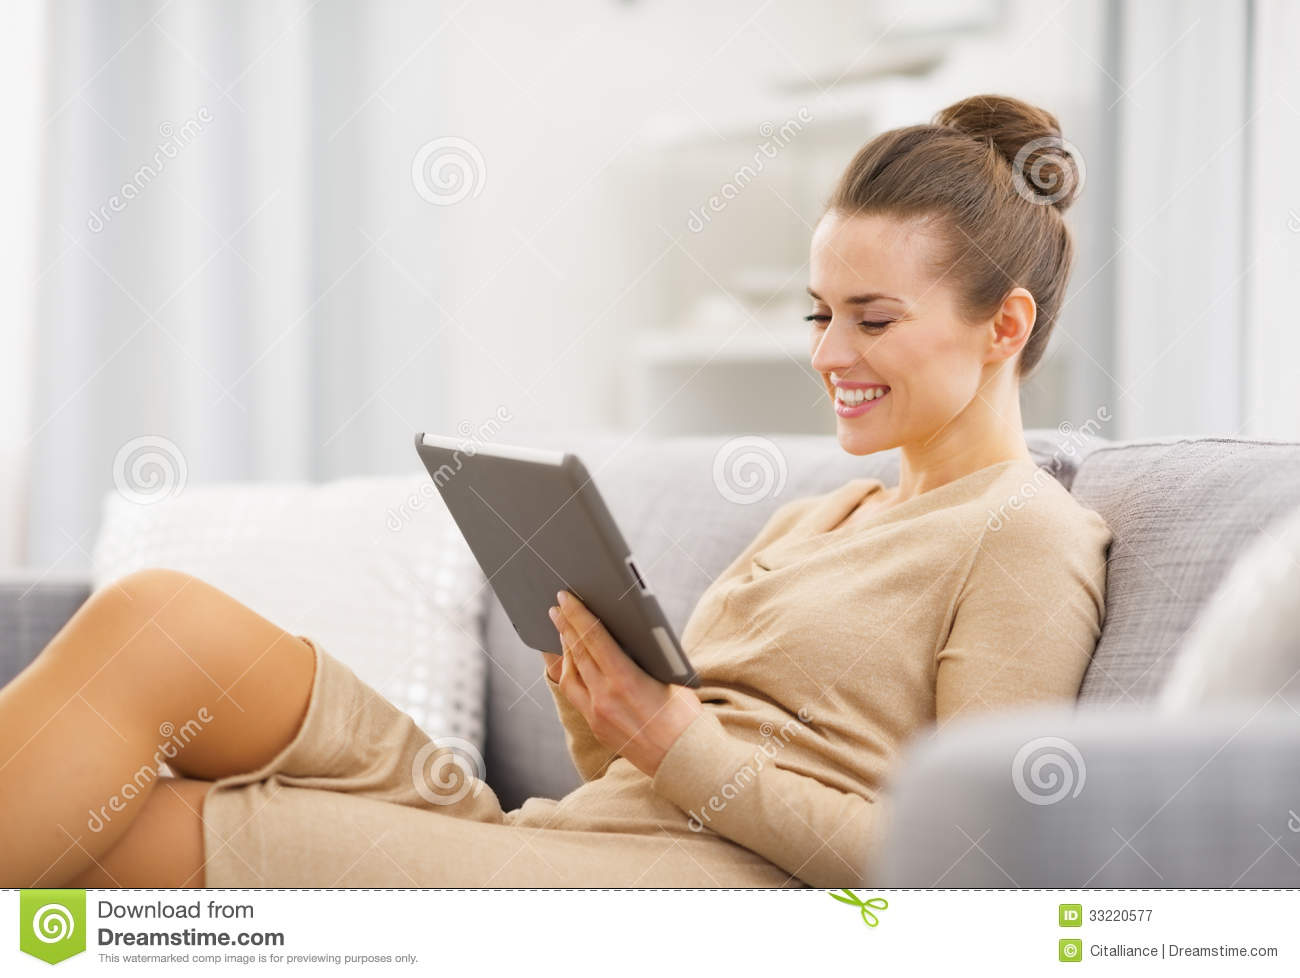 Happy young woman sitting on couch and working on tablet pc